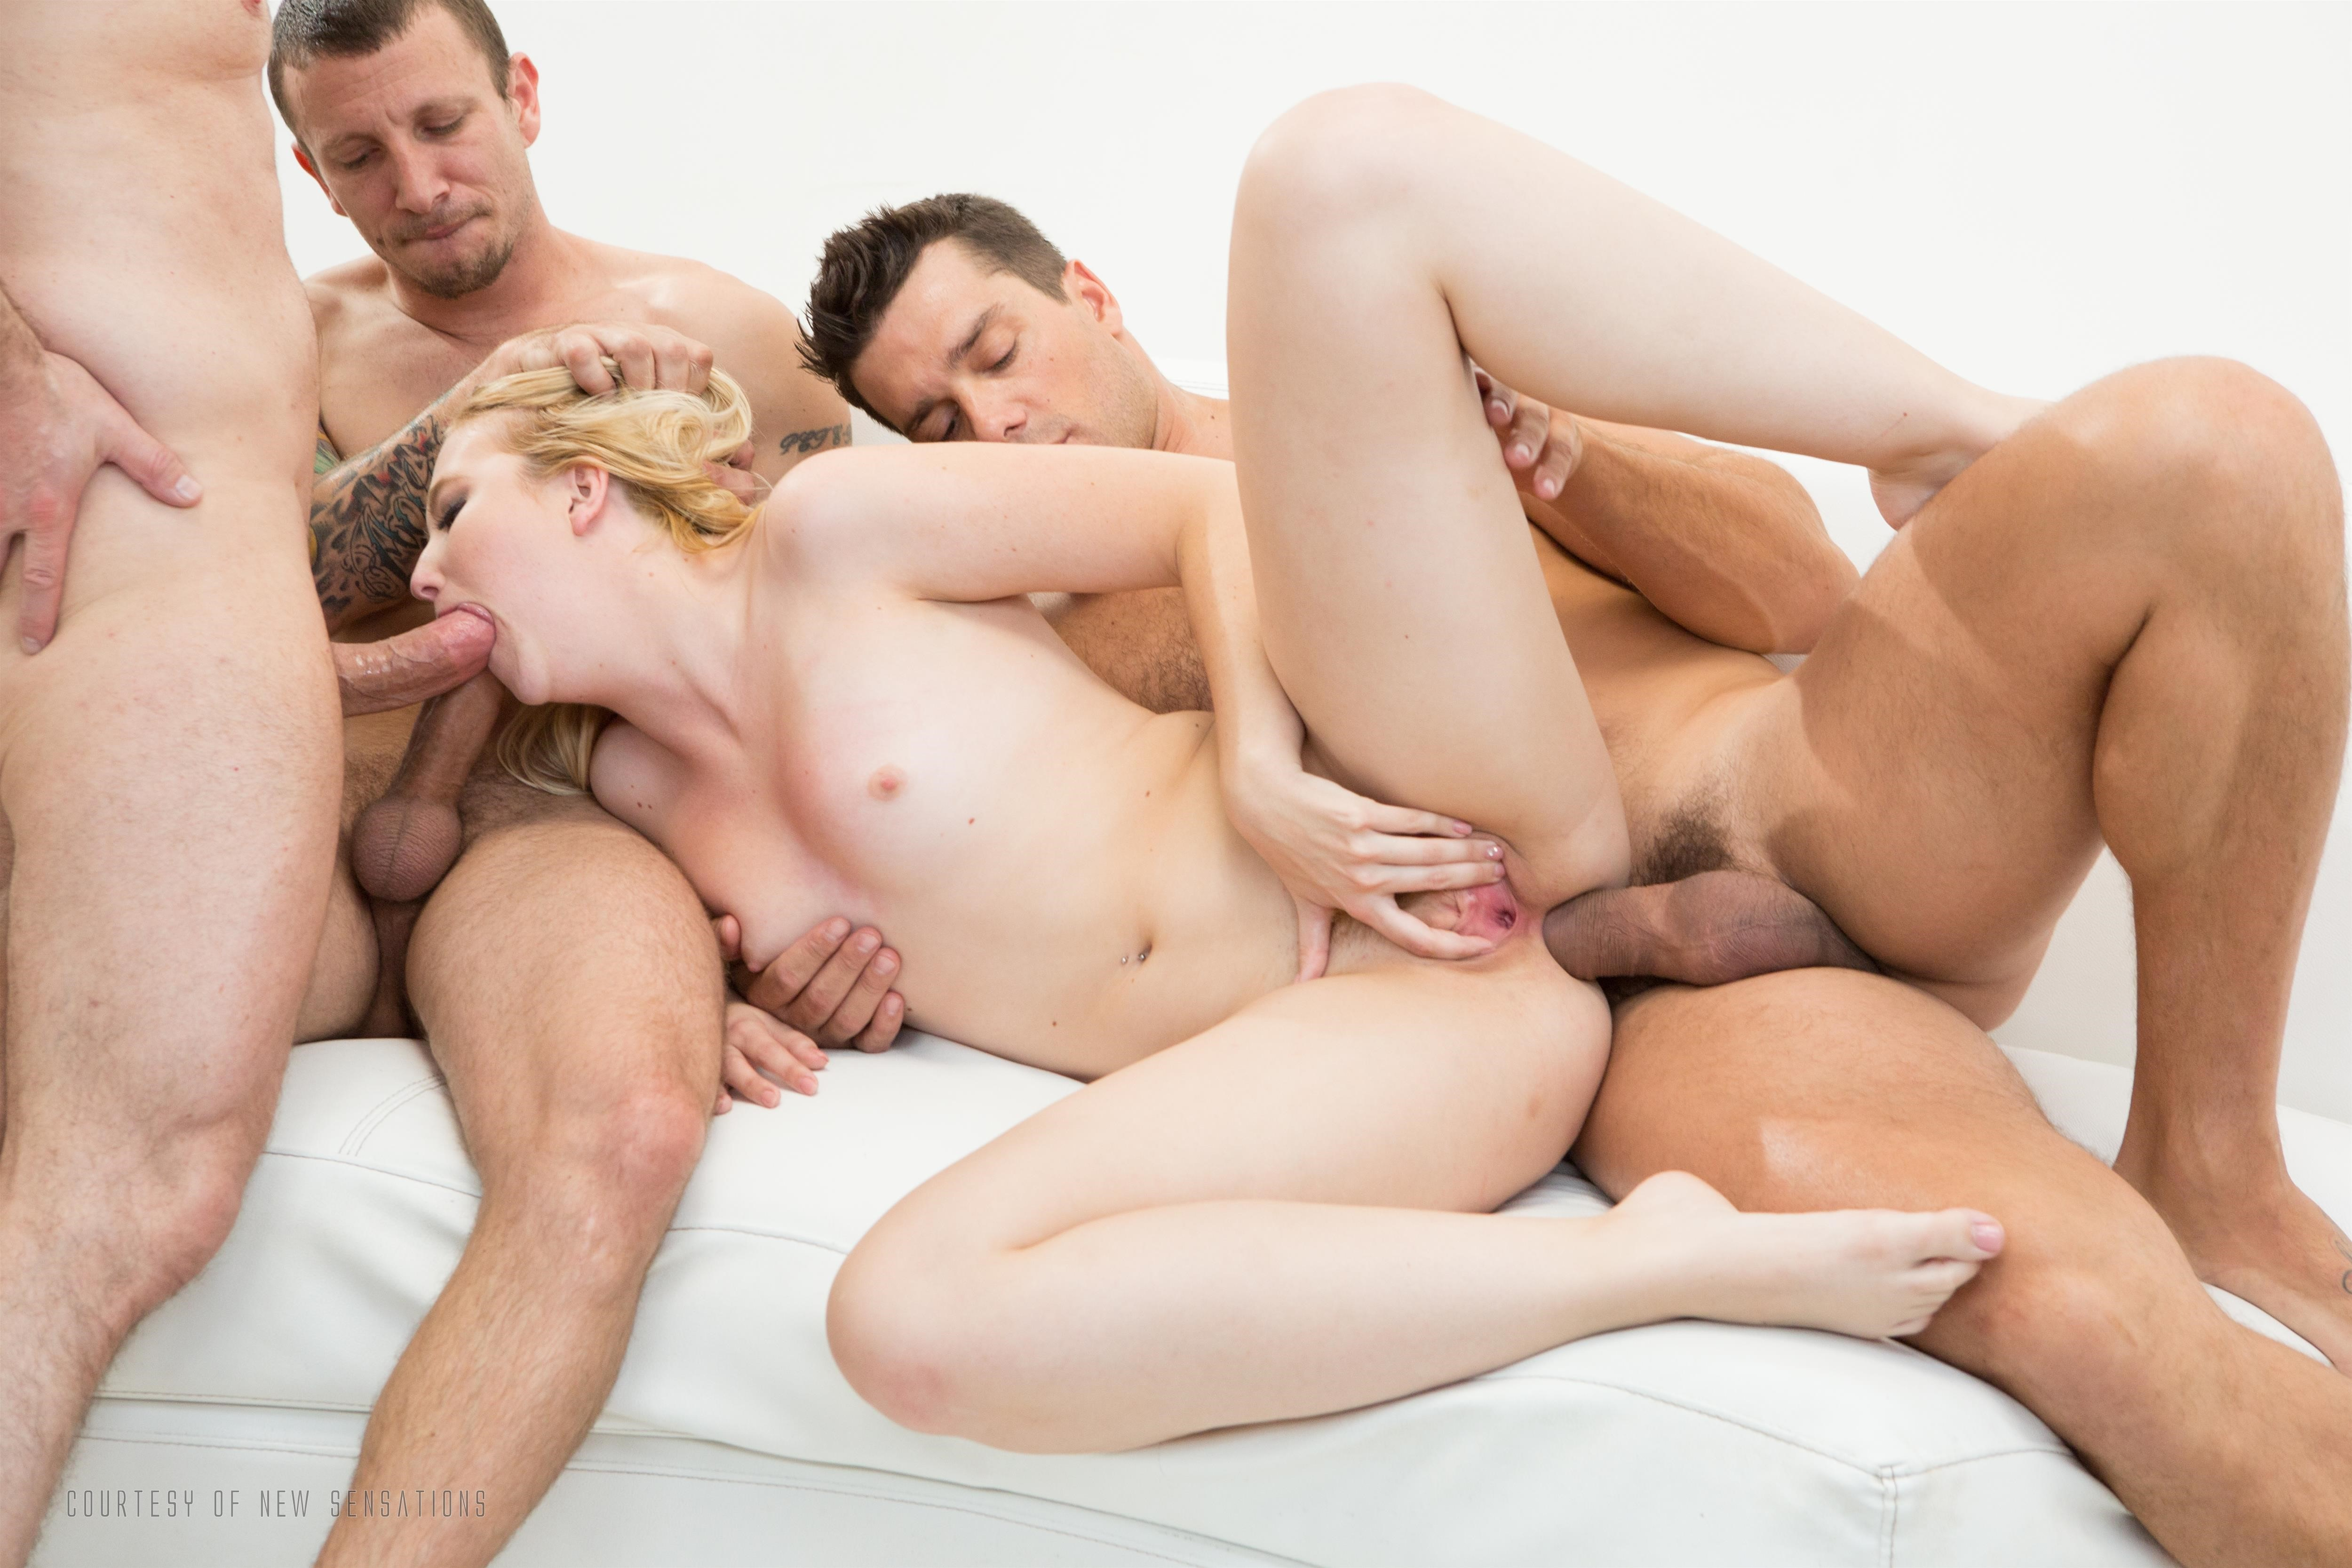 Samantha rone gets it on with holly heart 2